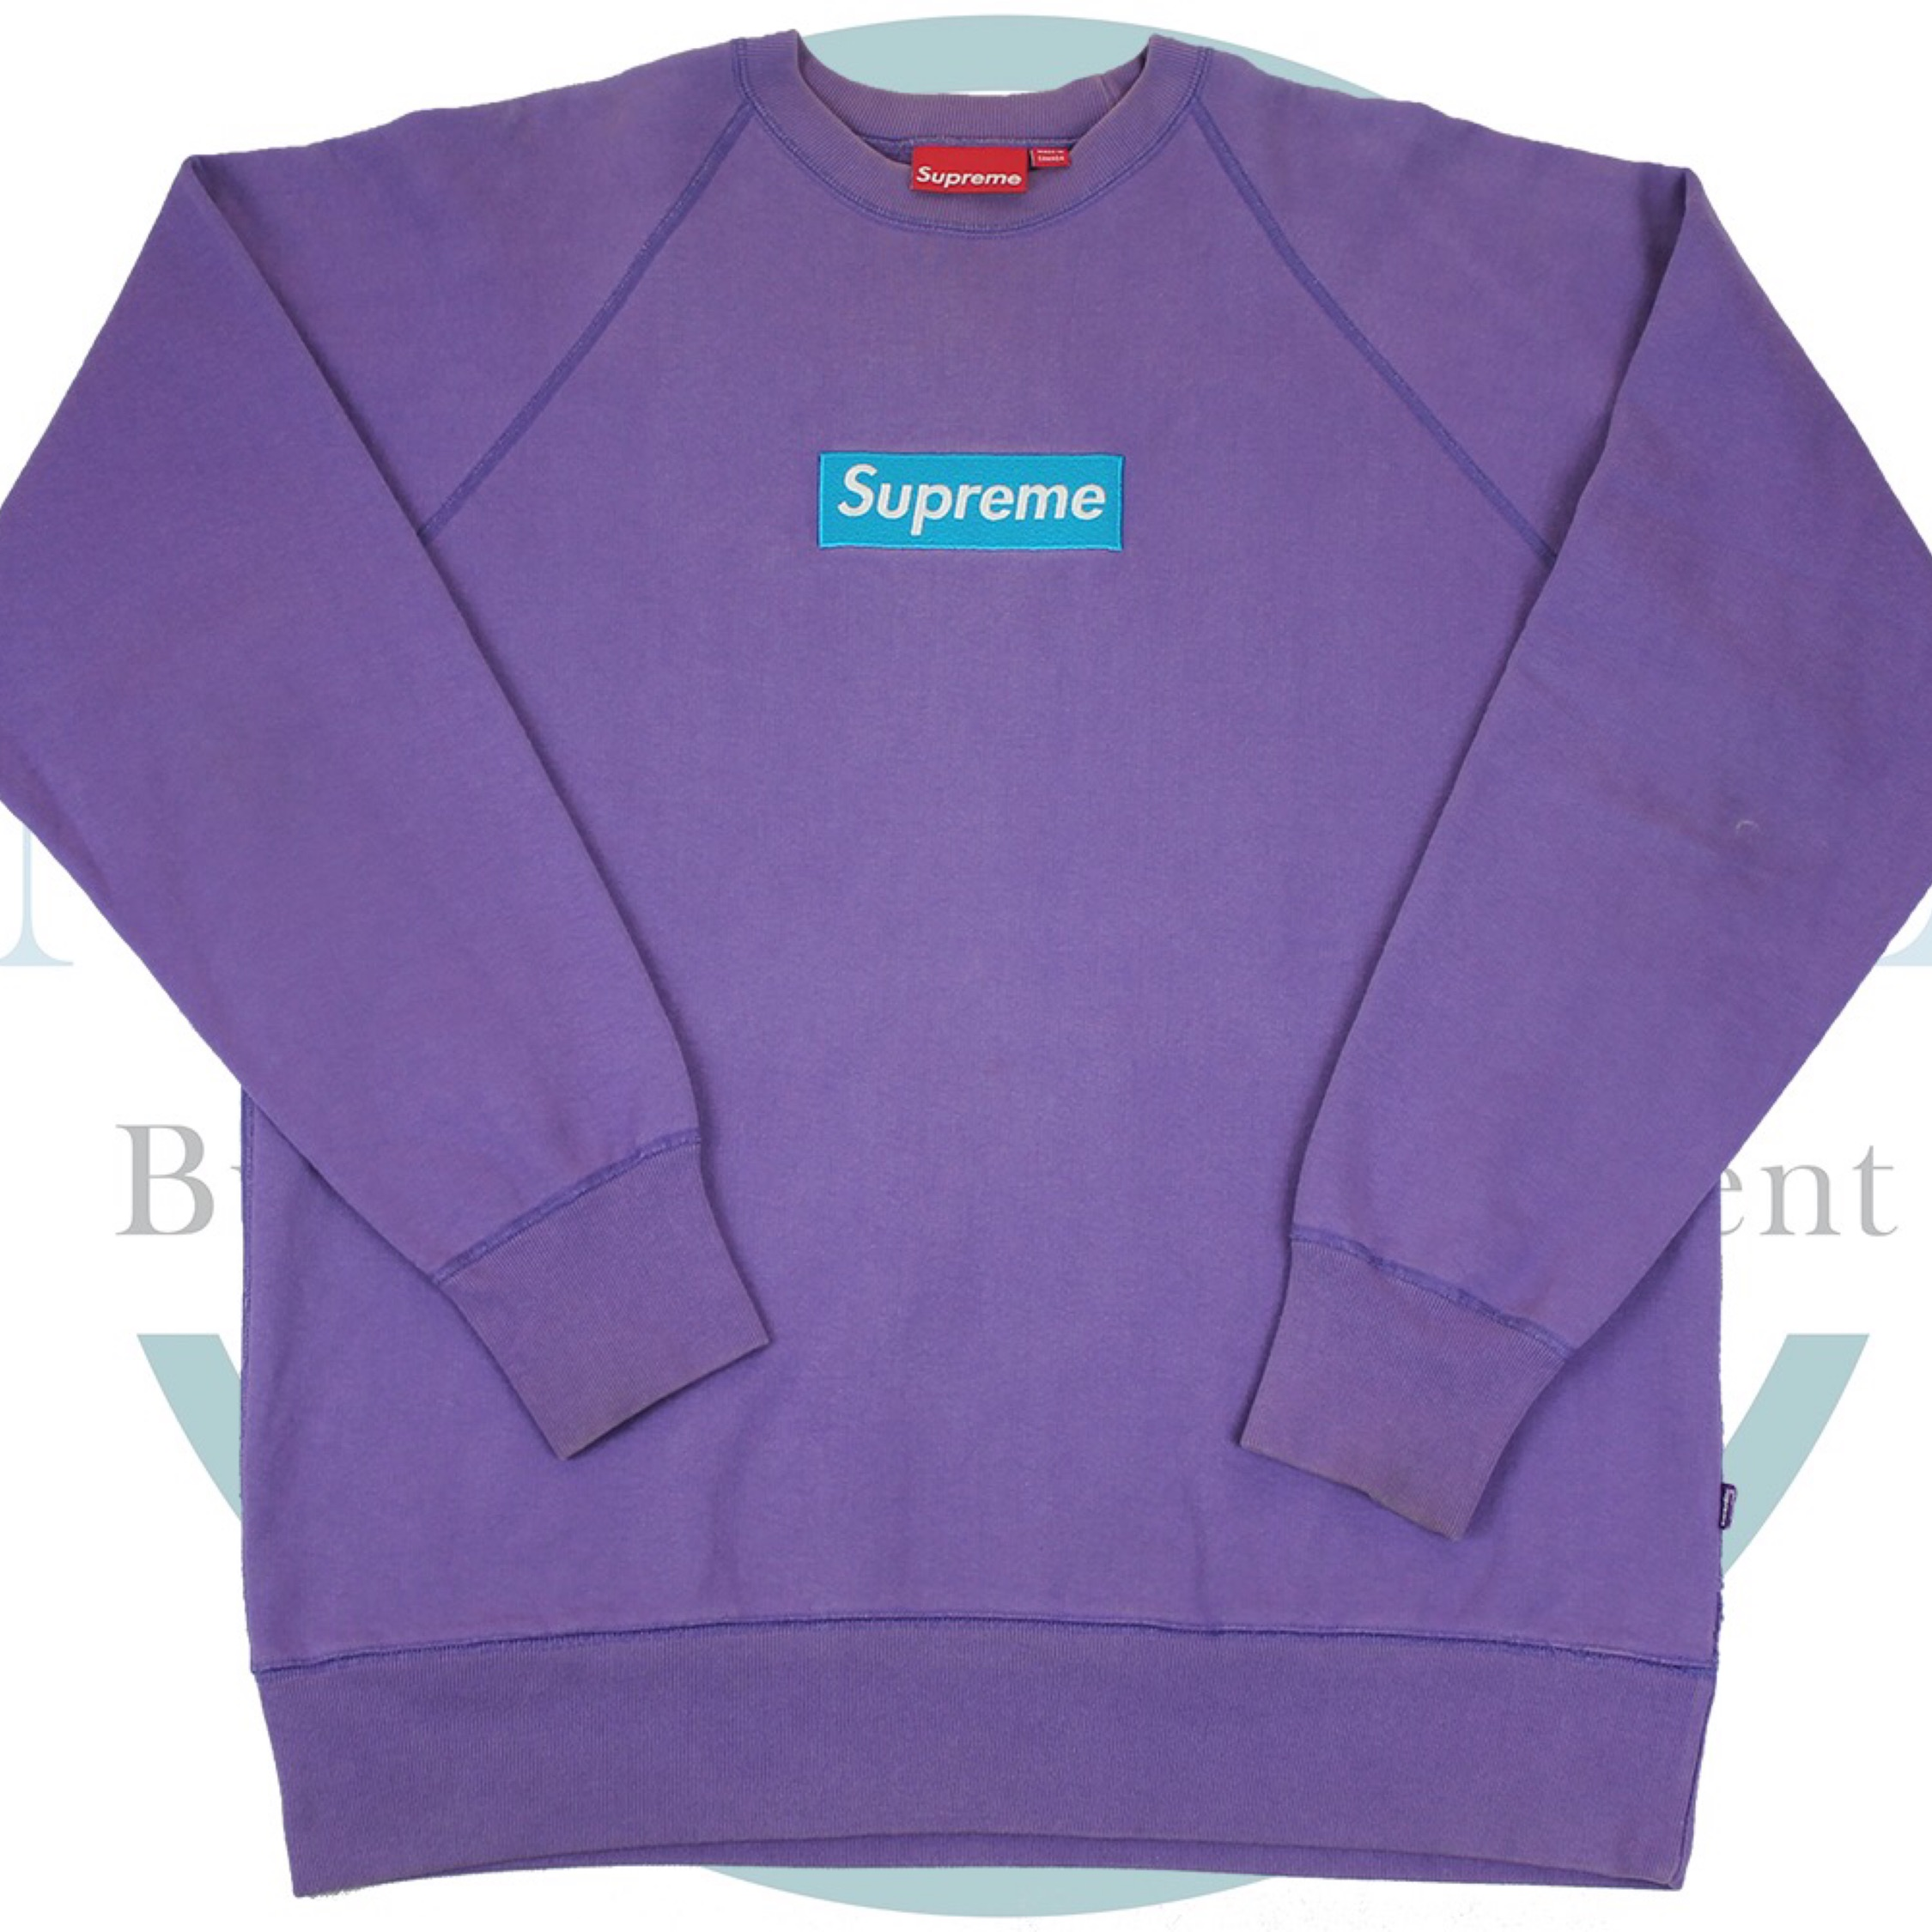 Supreme Teal On Purple Box Logo Crewneck.